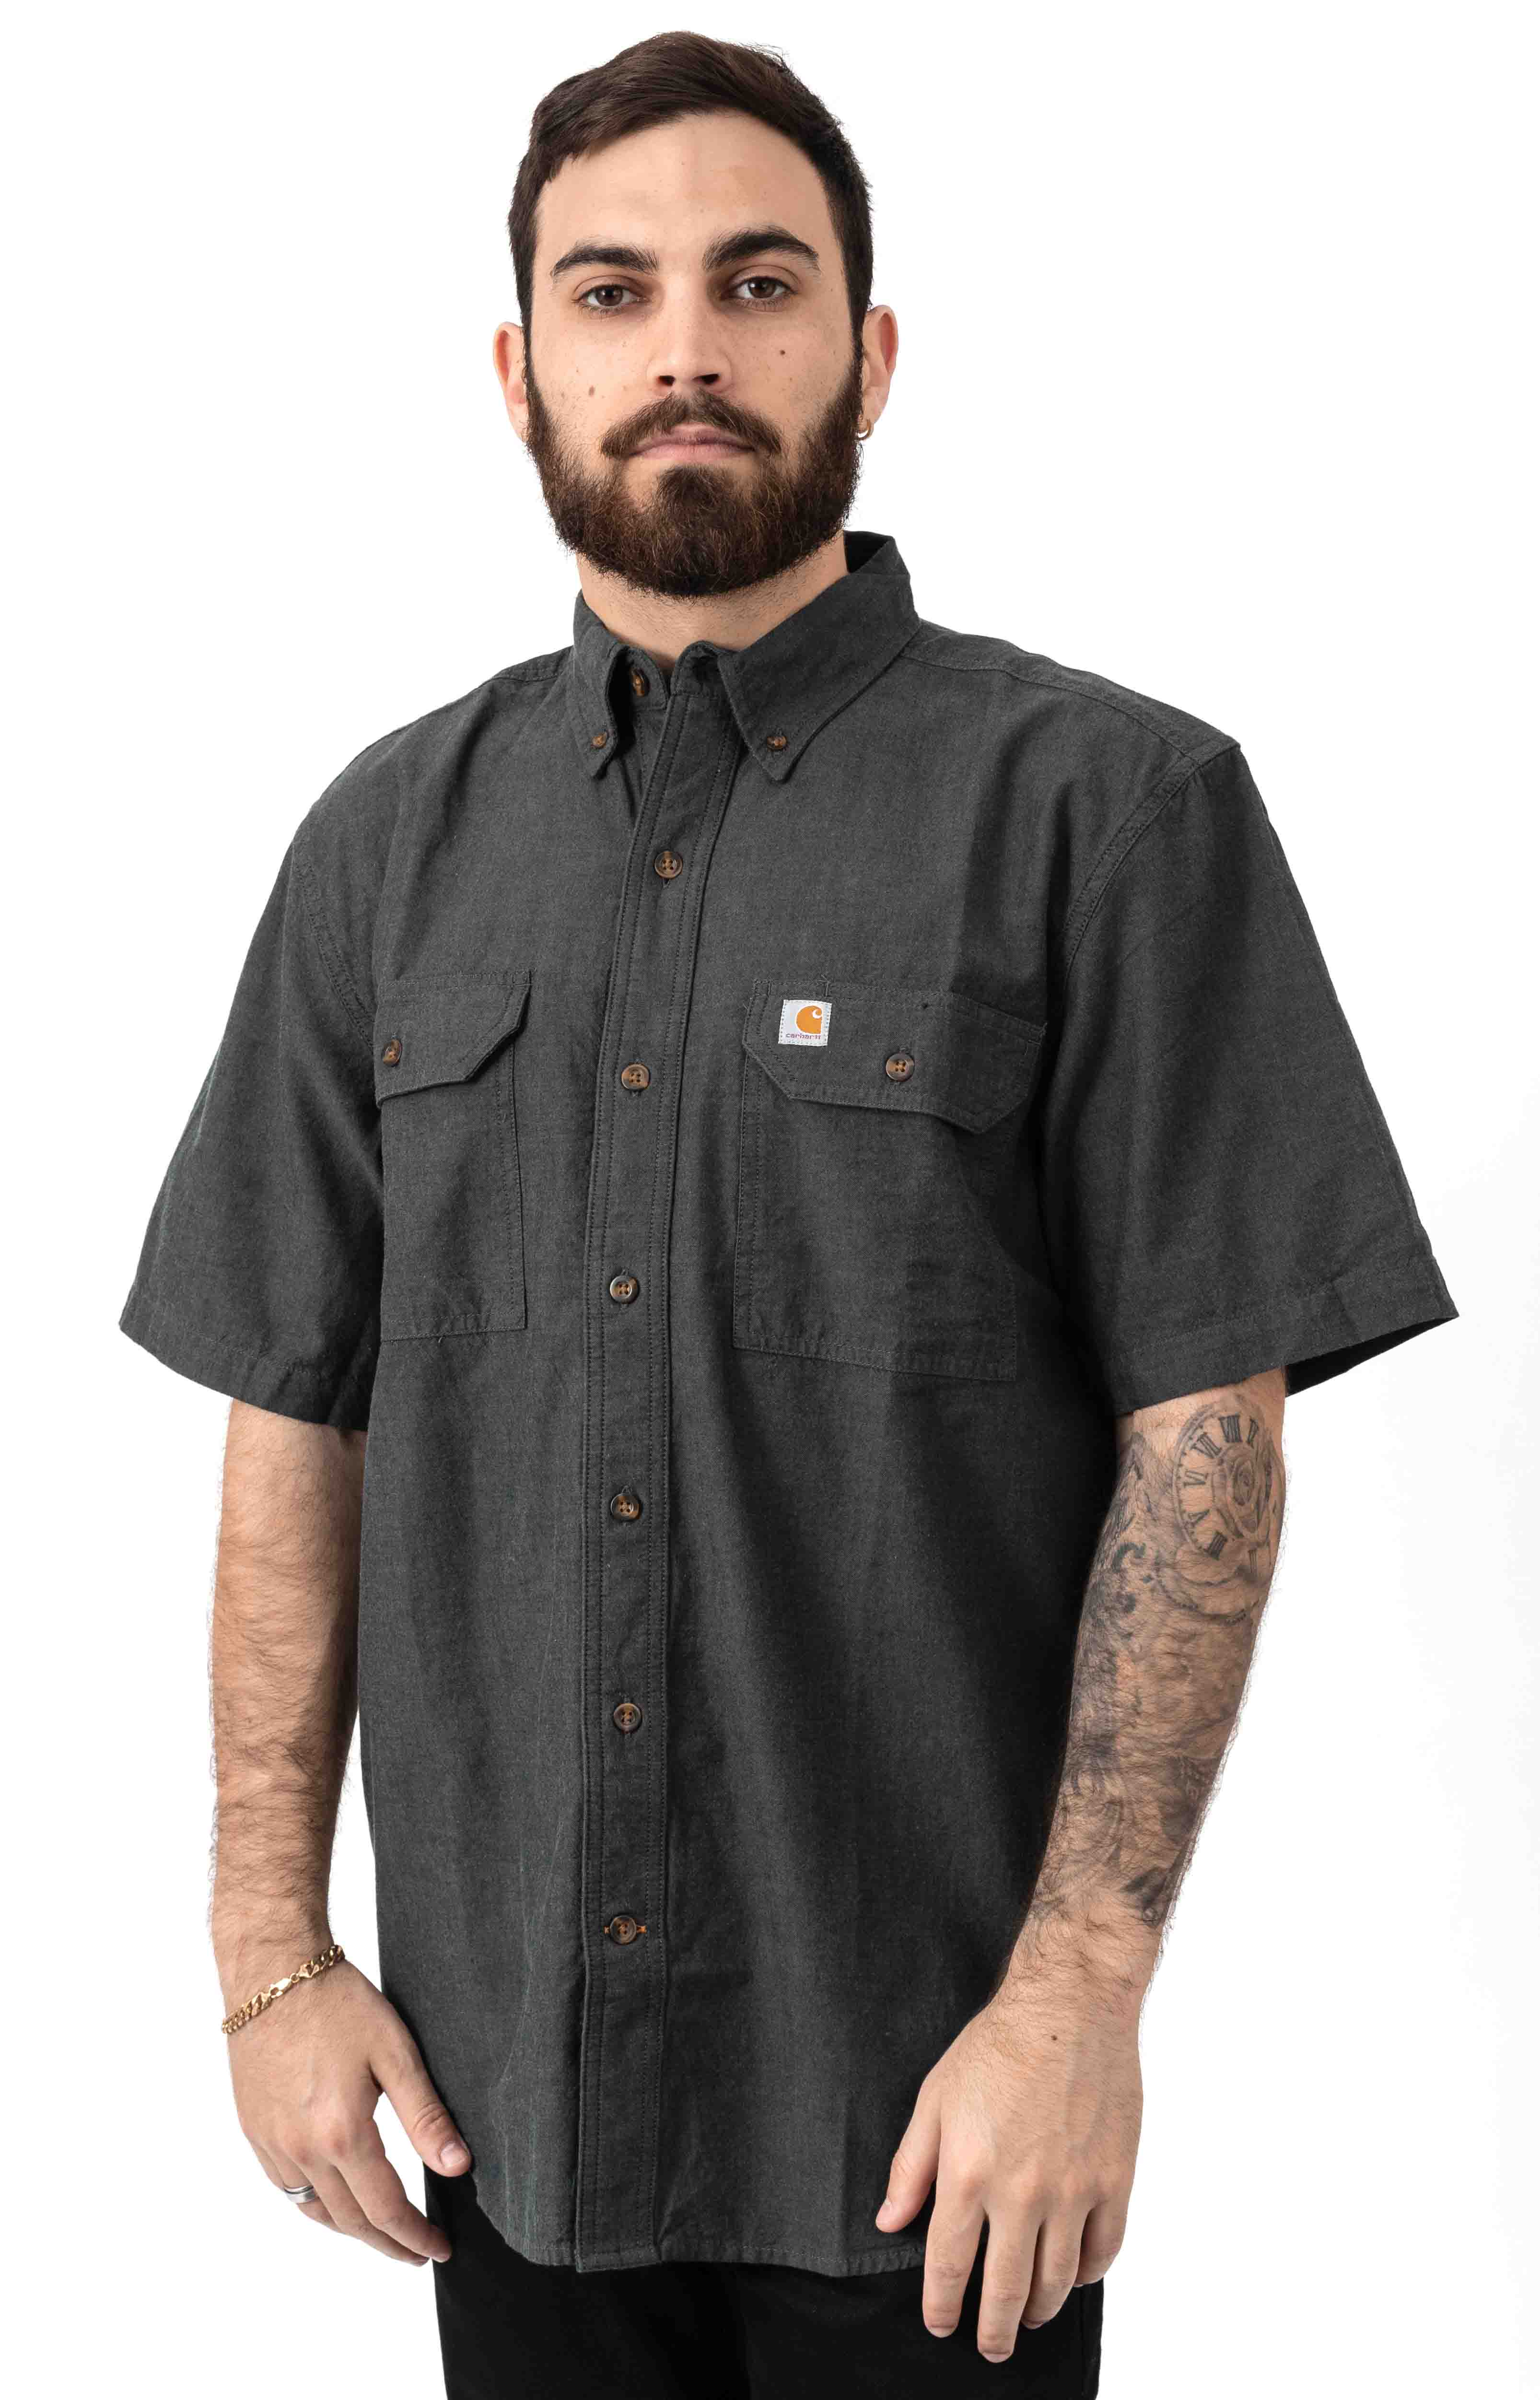 (104369) Original Fit MW S/S Button-Up Shirt - Black Chambray  2